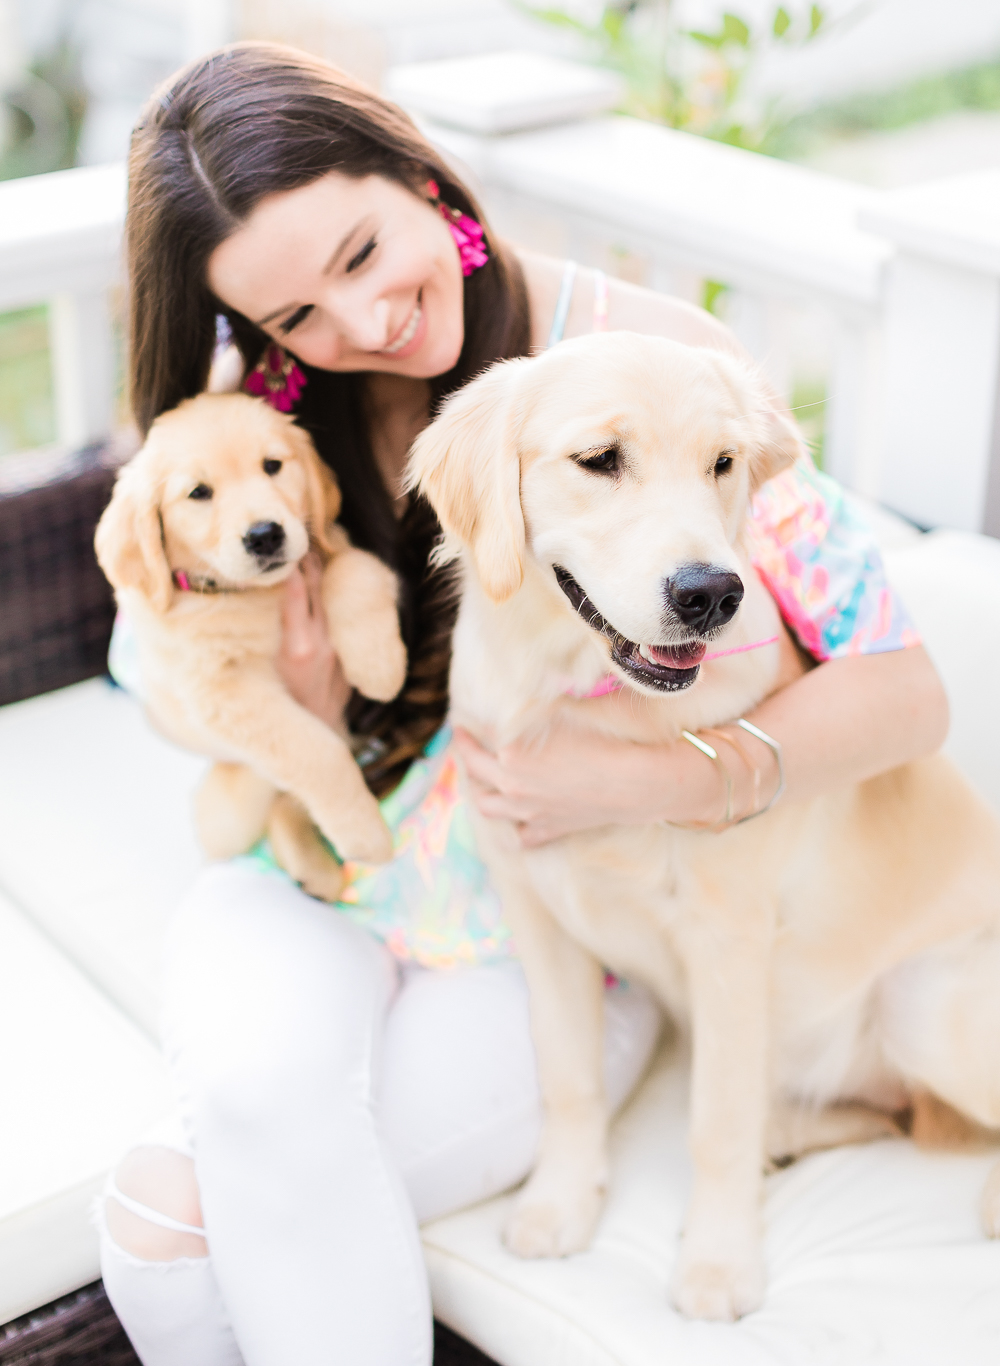 Bringing a Puppy Home Checklist, Puppy Proofing Your Home Checklist, Clear the Shelters Day information, Clear the Shelters: How to Prepare for a New Puppy by southern blogger and dog mom Stephanie Ziajka from Diary of a Debutante, Golden retriever puppies